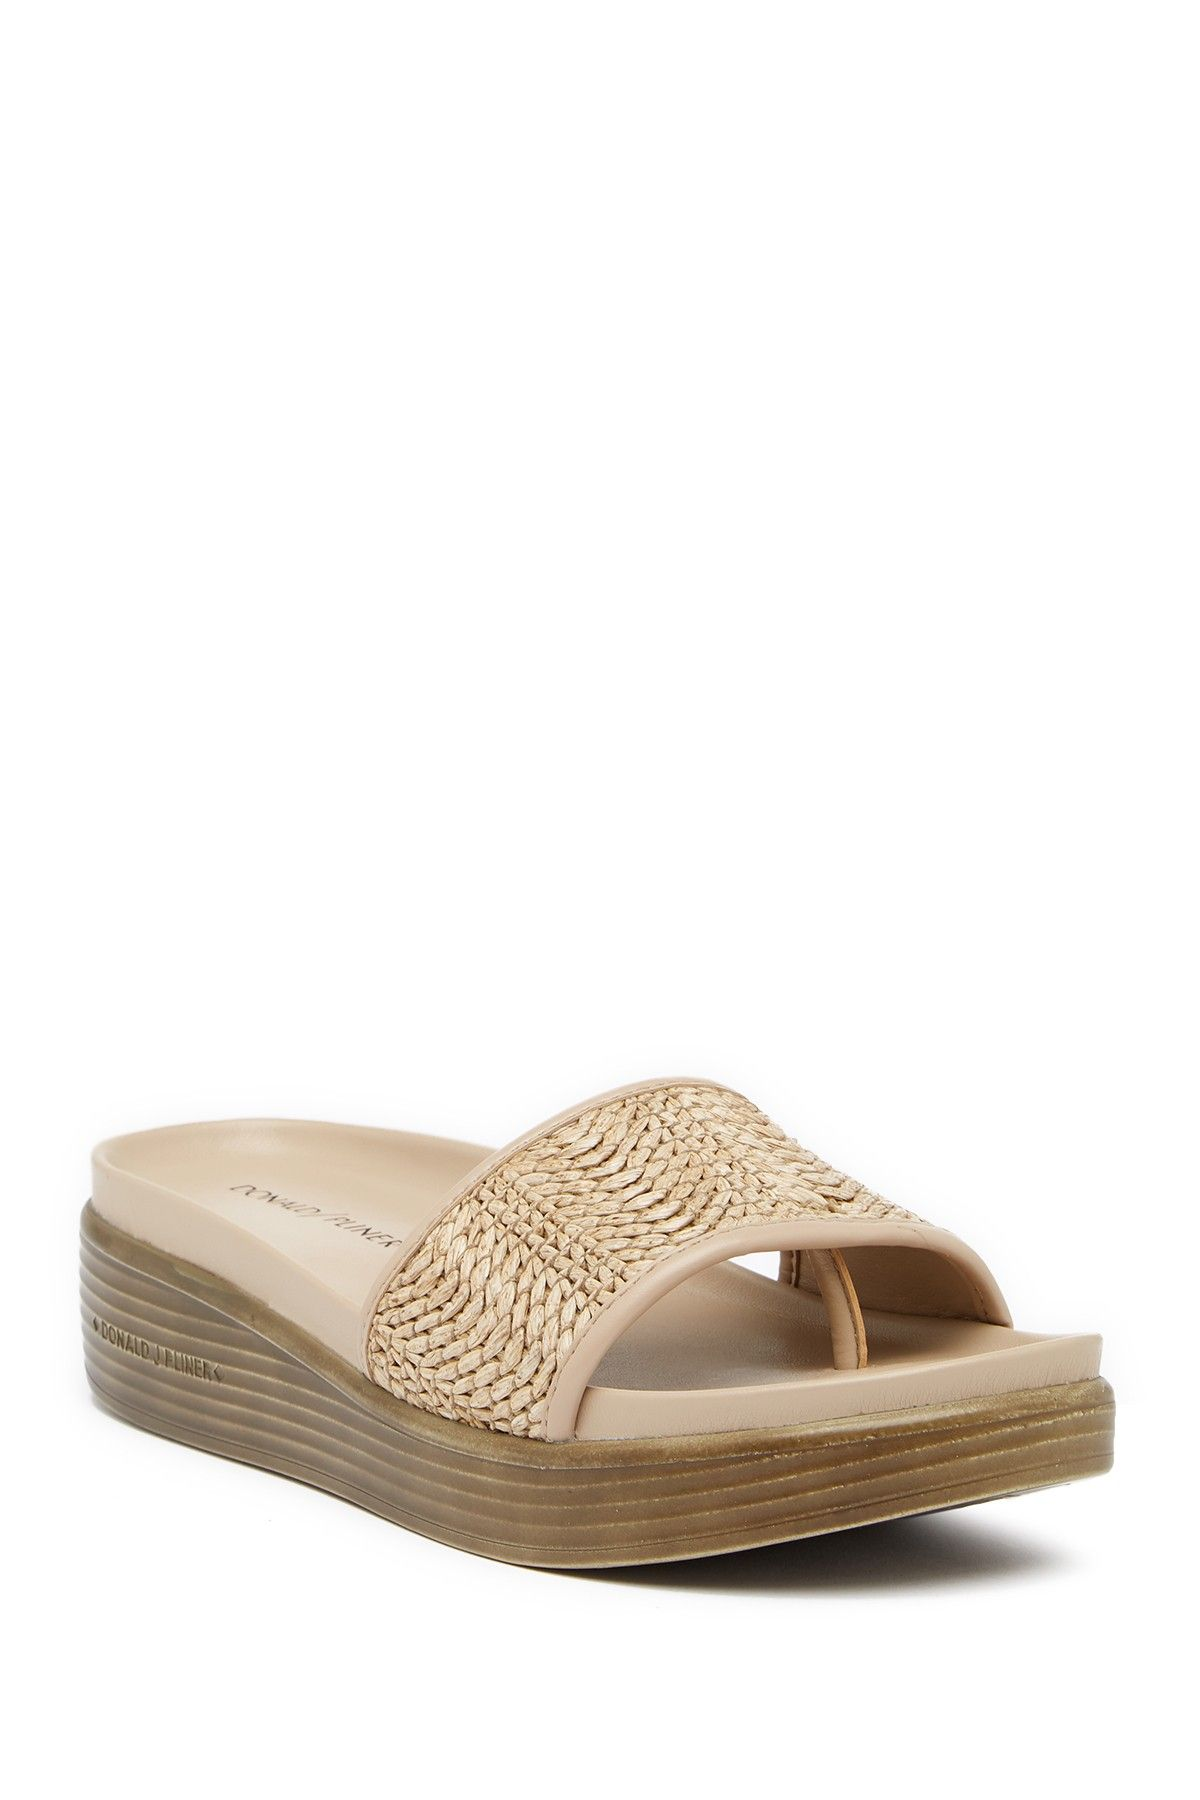 Women's Shoes | Nordstrom Rack